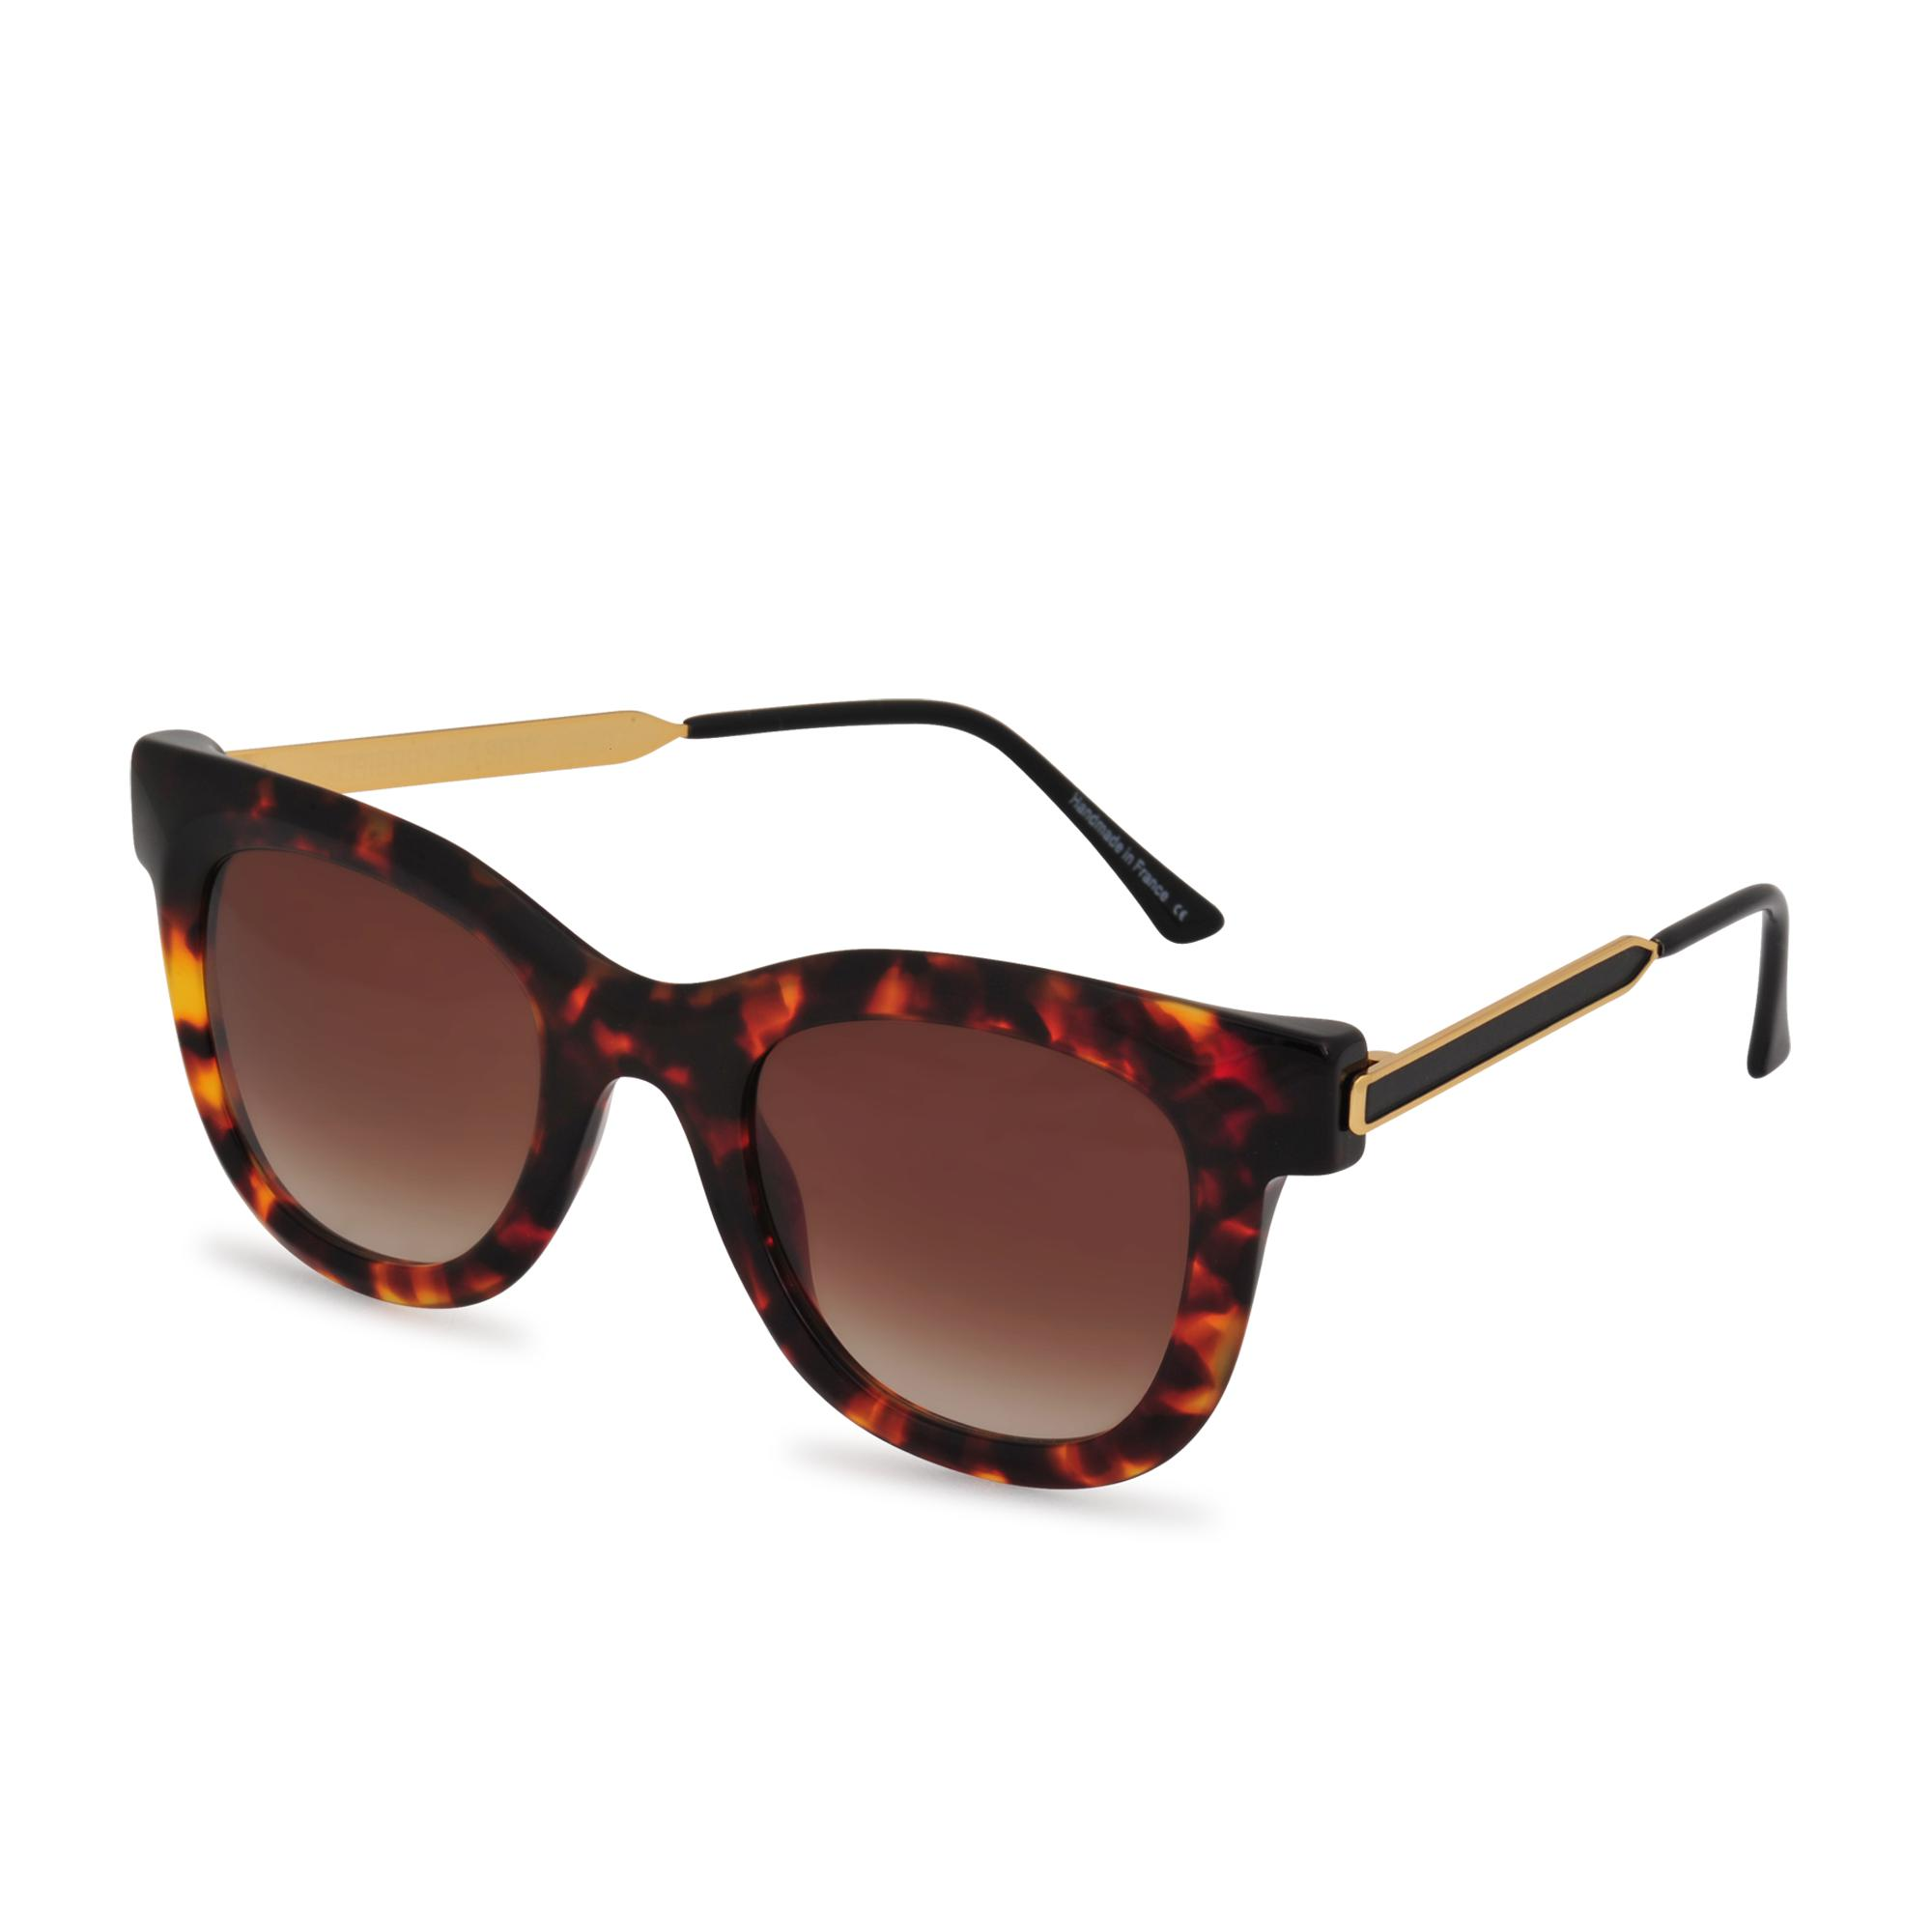 Thierry Lasry Sonnenbrille Nudity 008 hzPnuZs4